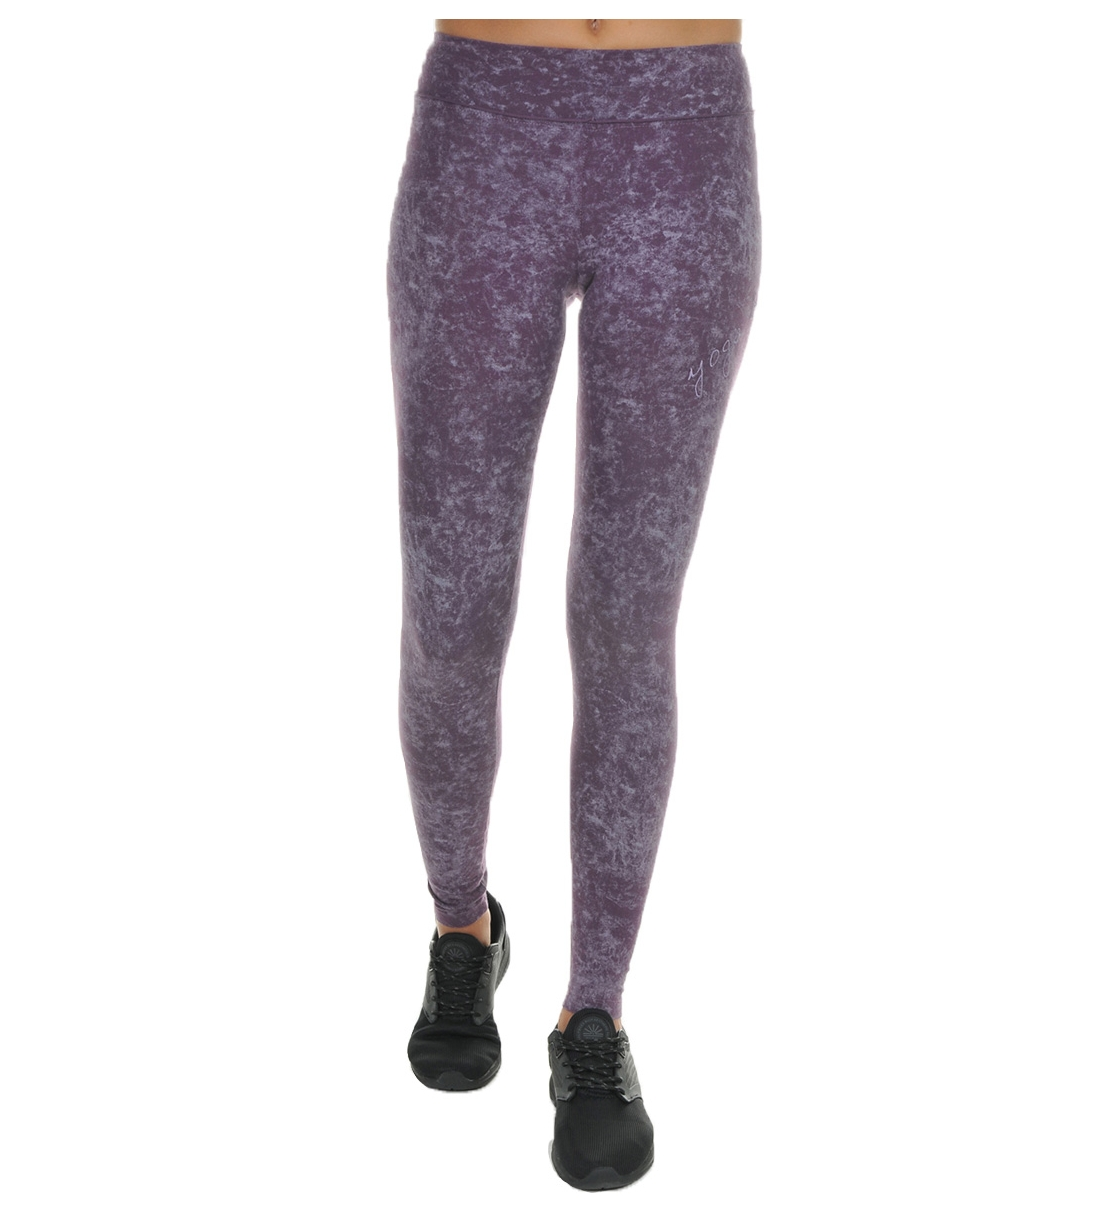 Body Talk Fw16 Yogaw Tights 4/4